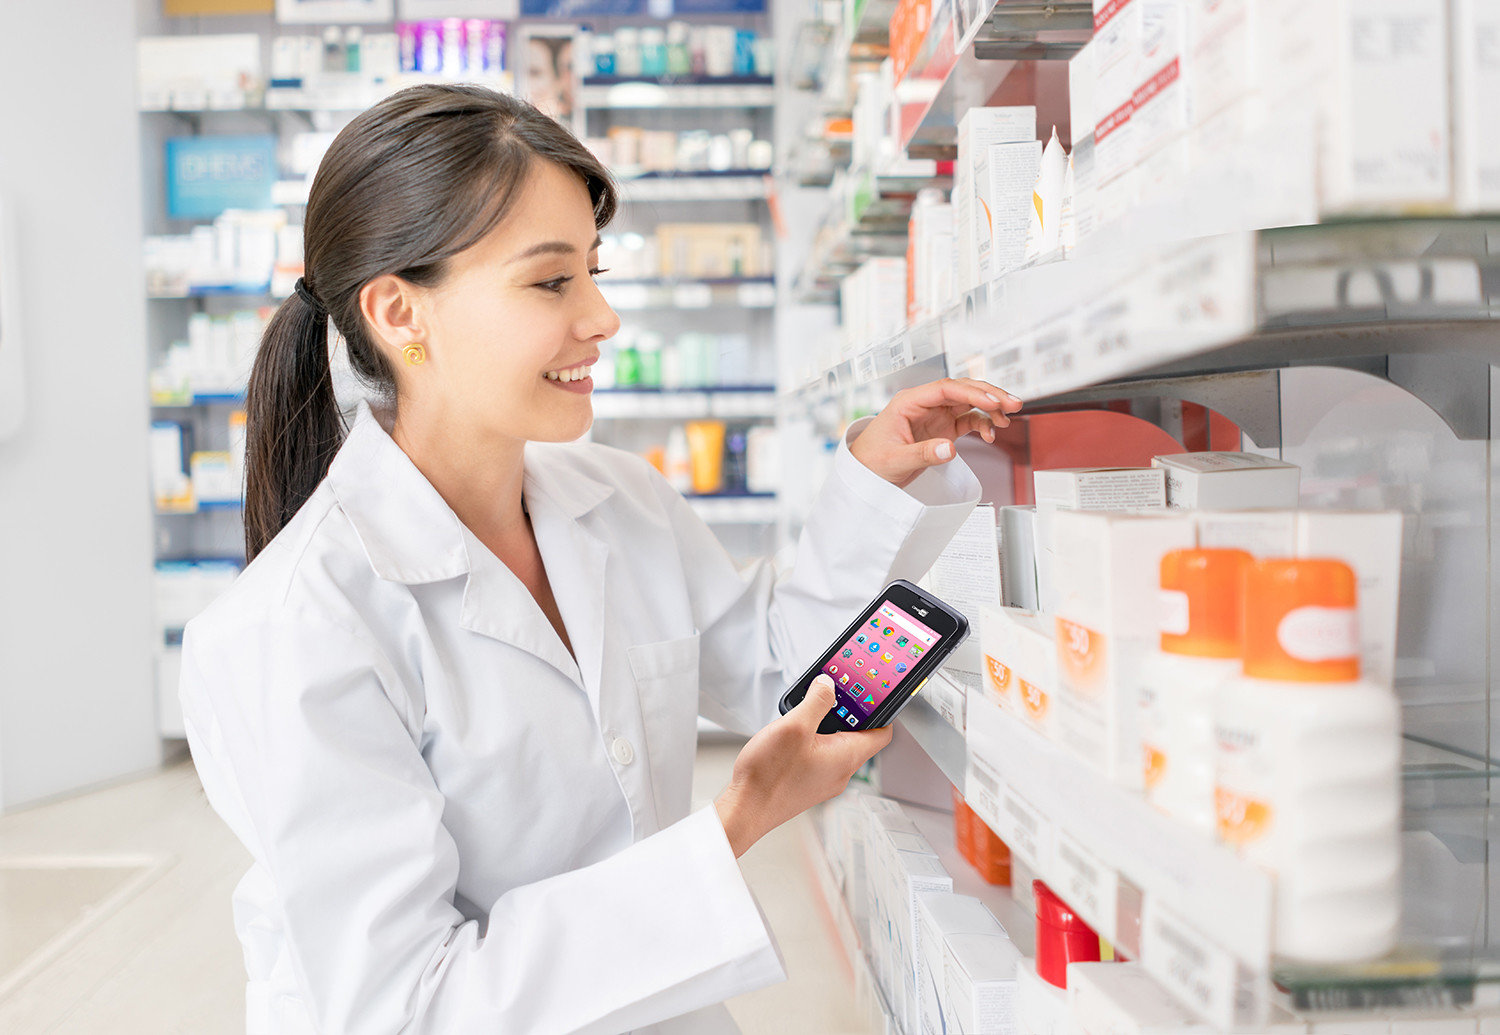 Retail Solution - The CipherLab RS31 Keeps Chain Pharmacy In-store Stocks More Accurate Australia CipherLab world leader in AIDC solutions